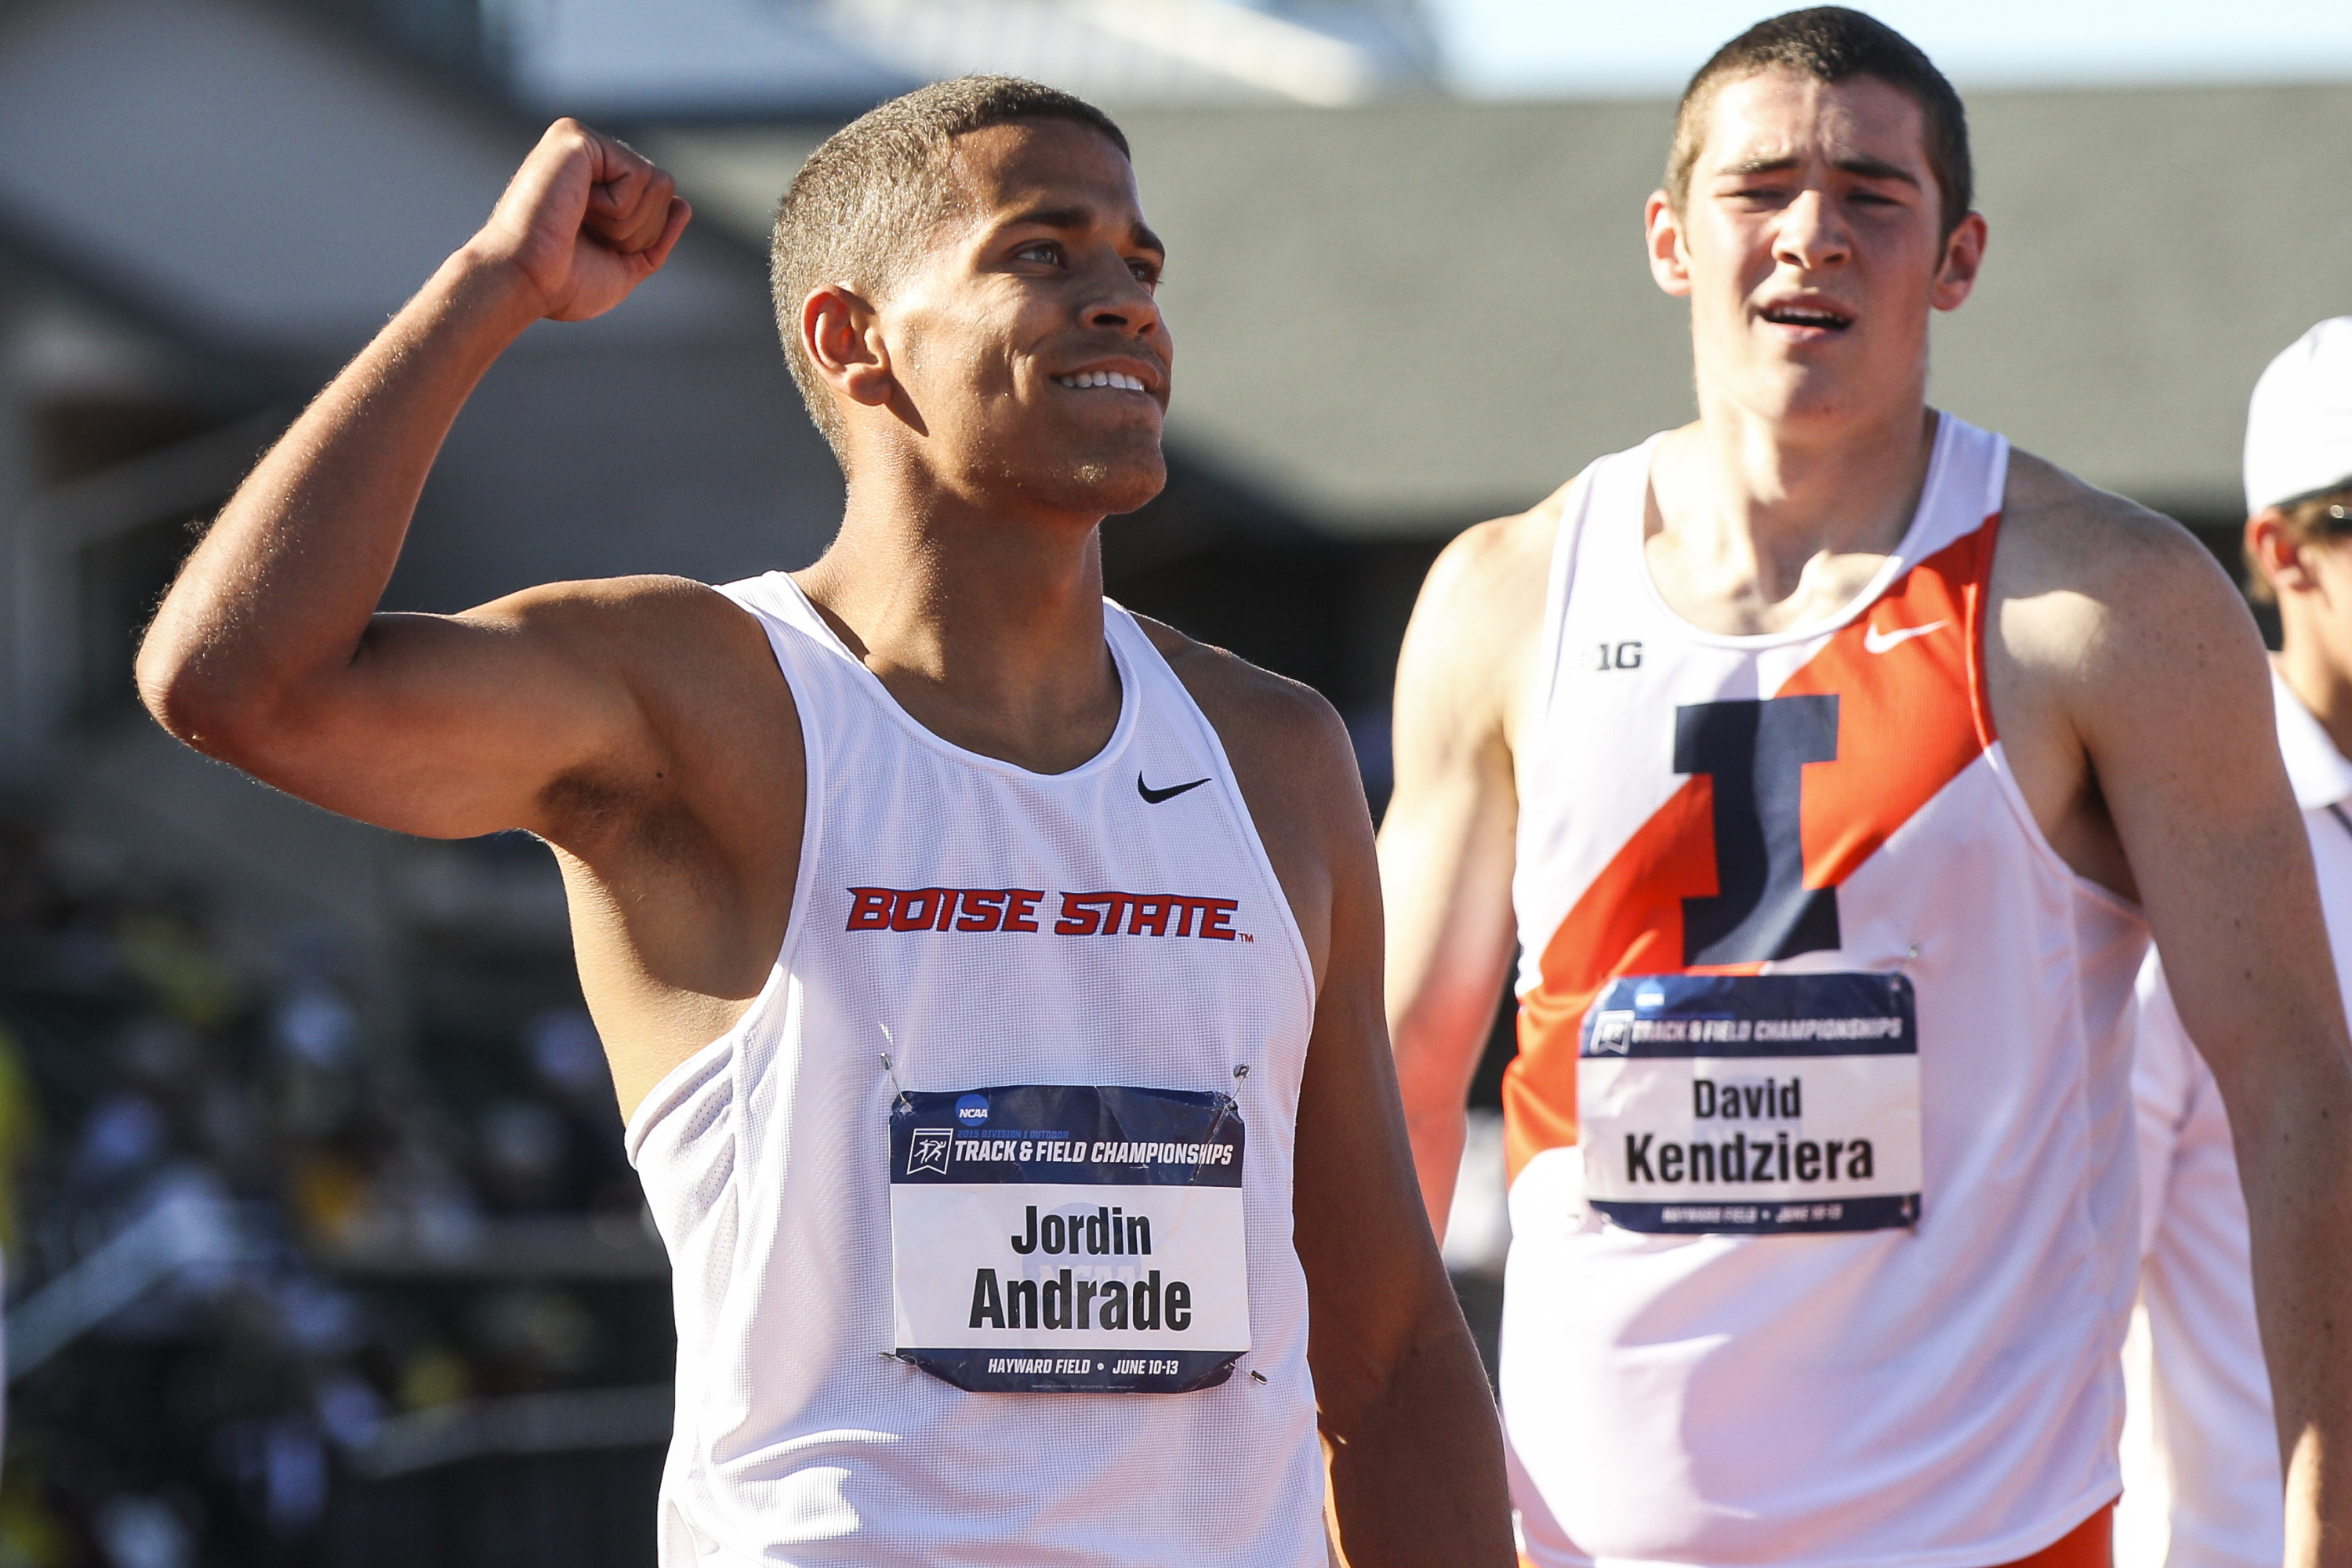 Andrade will look to improve on his 10th-place finish at last year's USA Outdoor Track and Field Championships